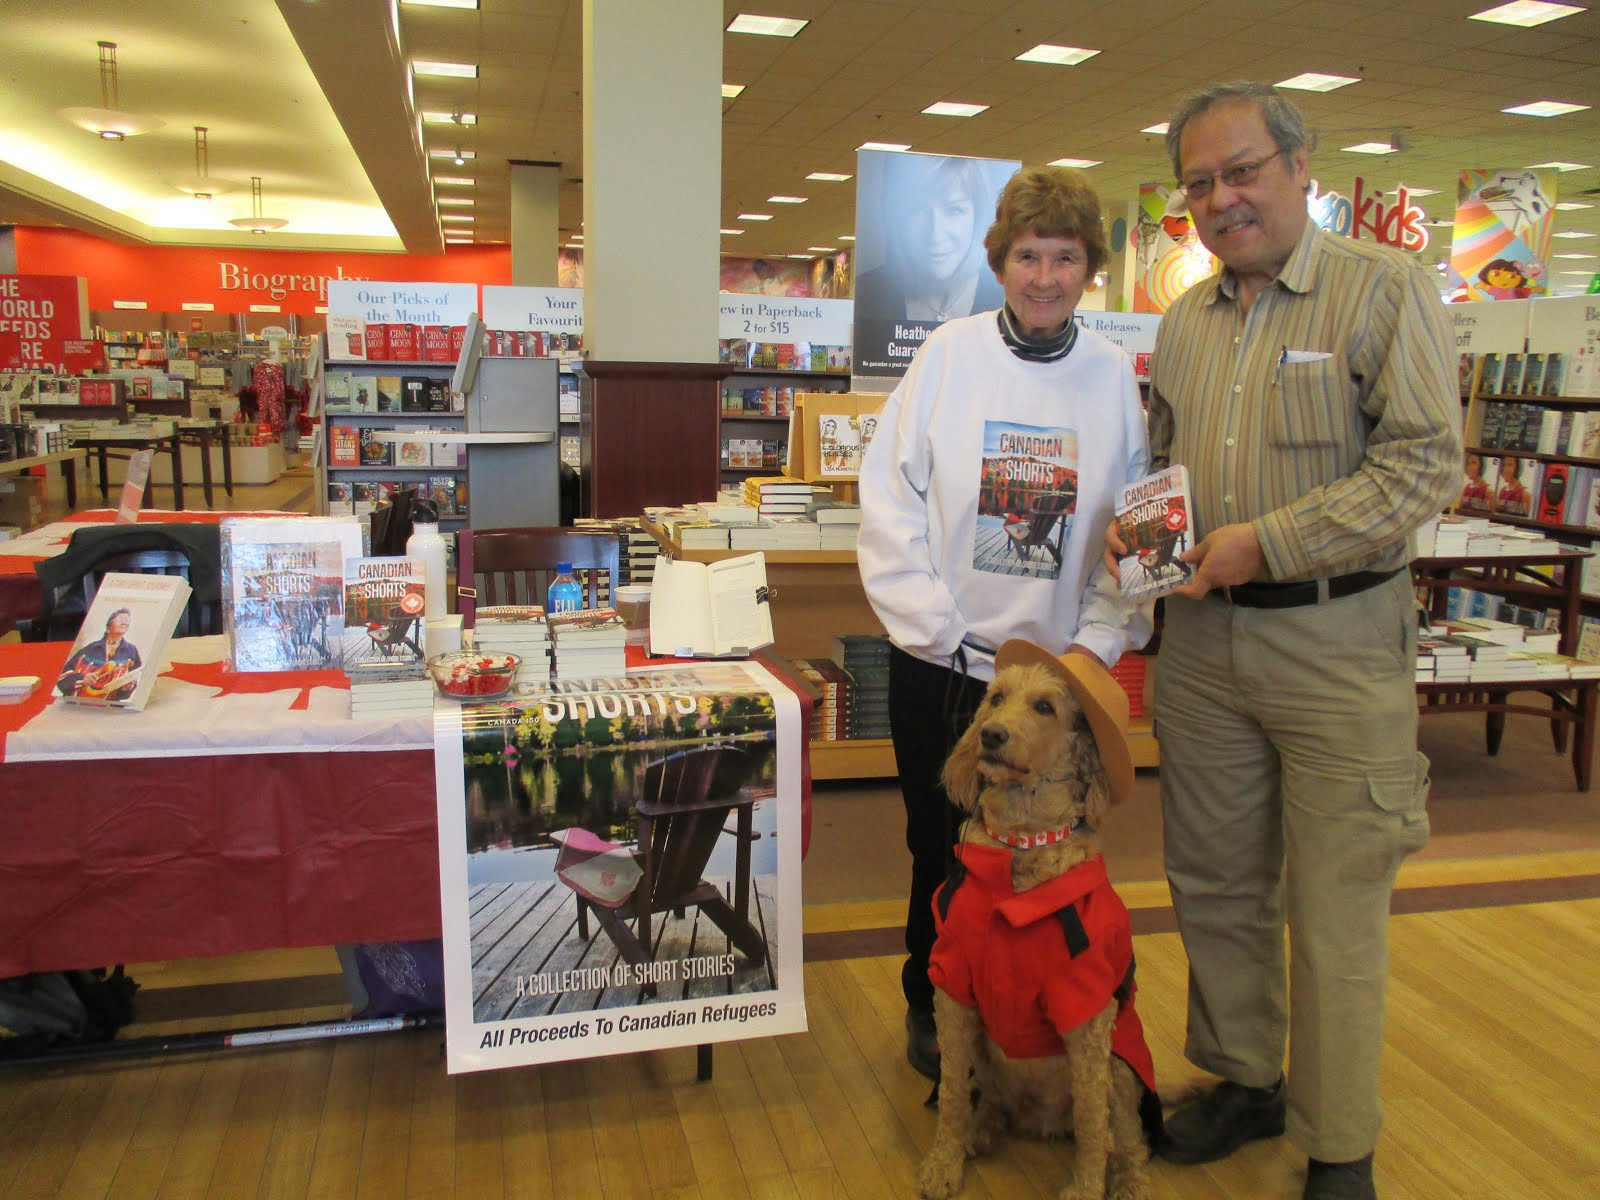 Elvis the Mountie Dog Steals the Show at the Book Signing